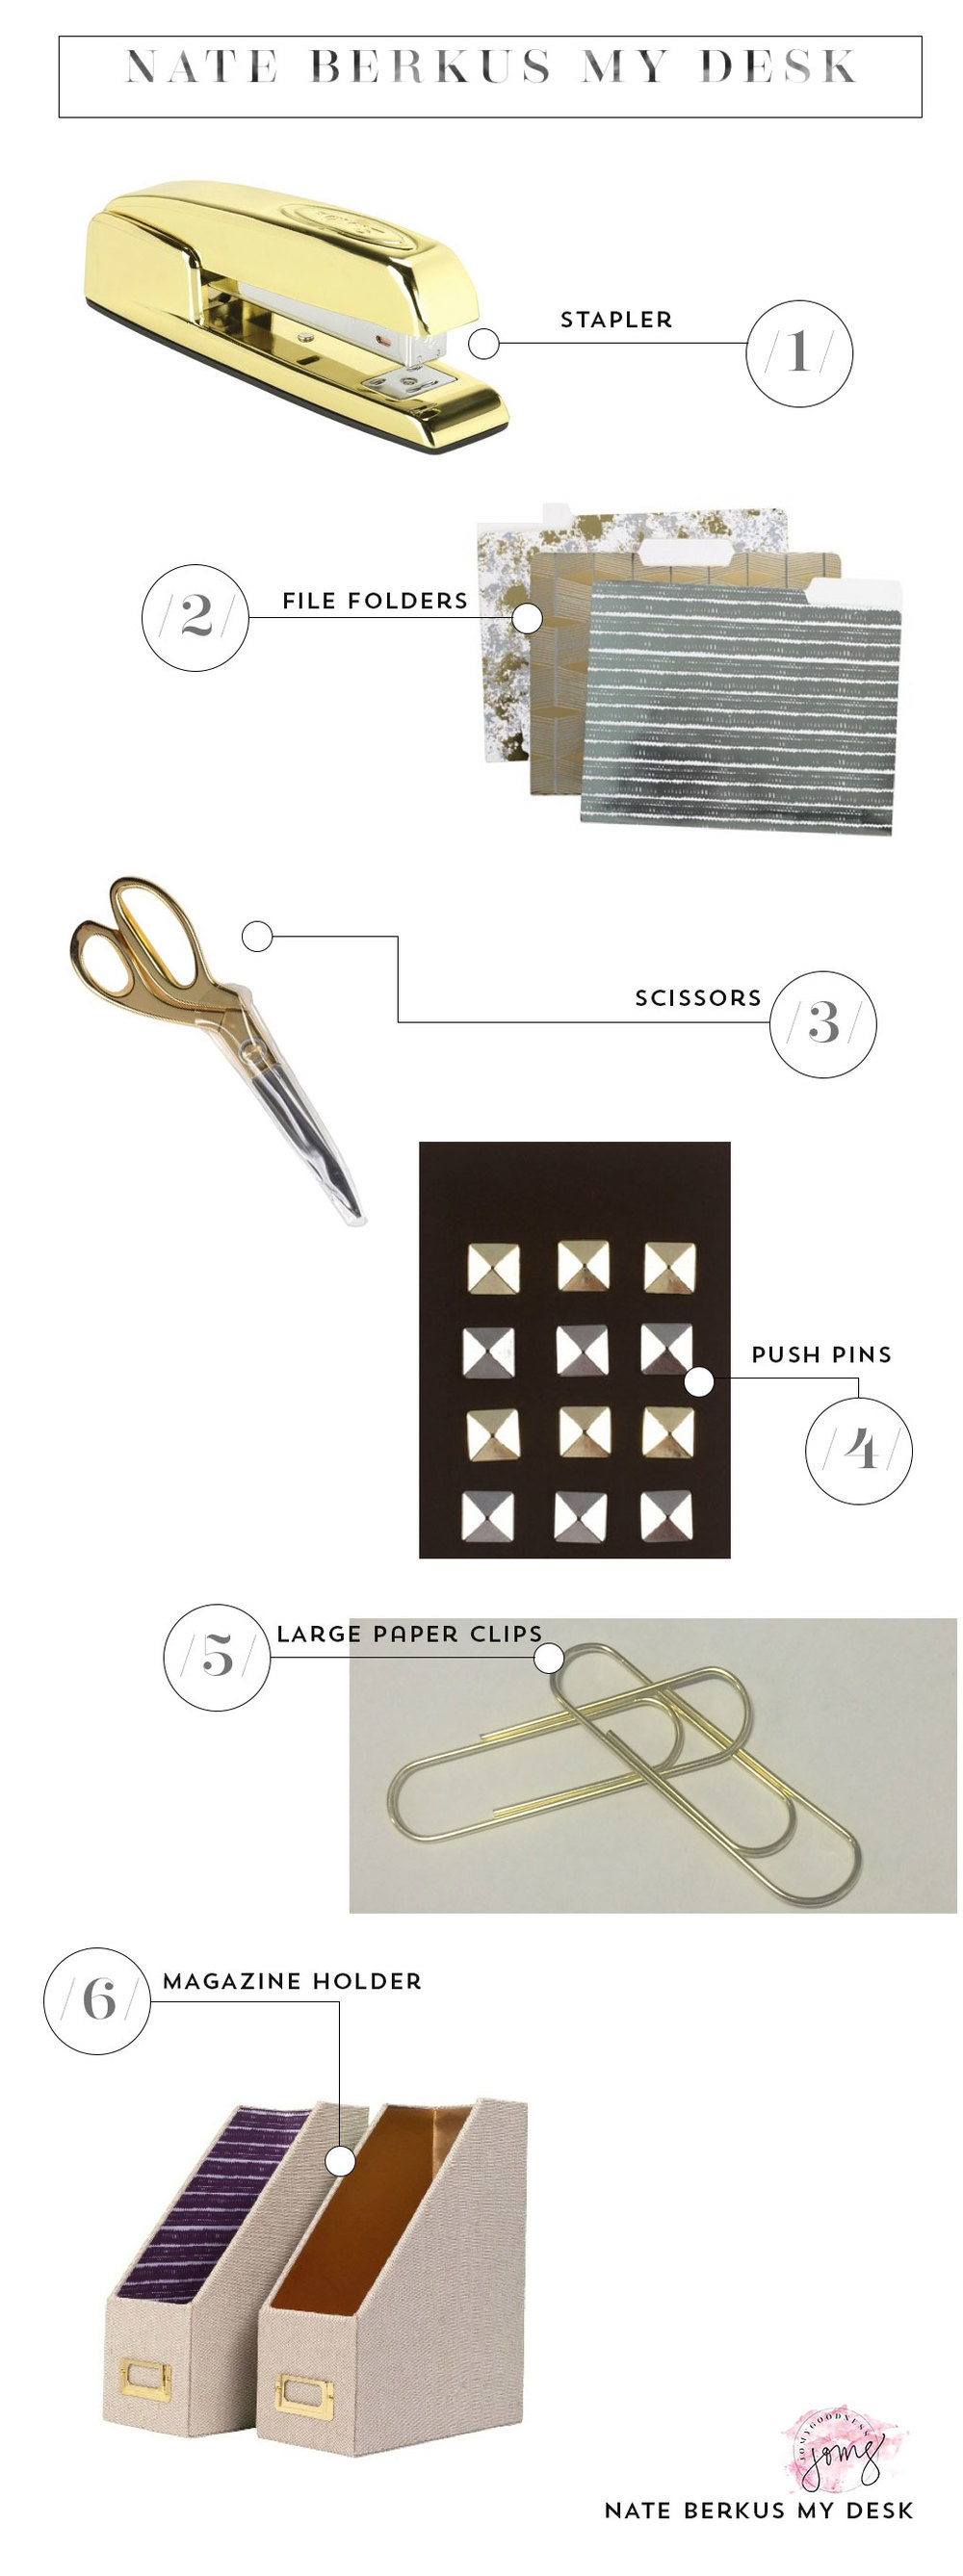 Nate Berkus office supplies